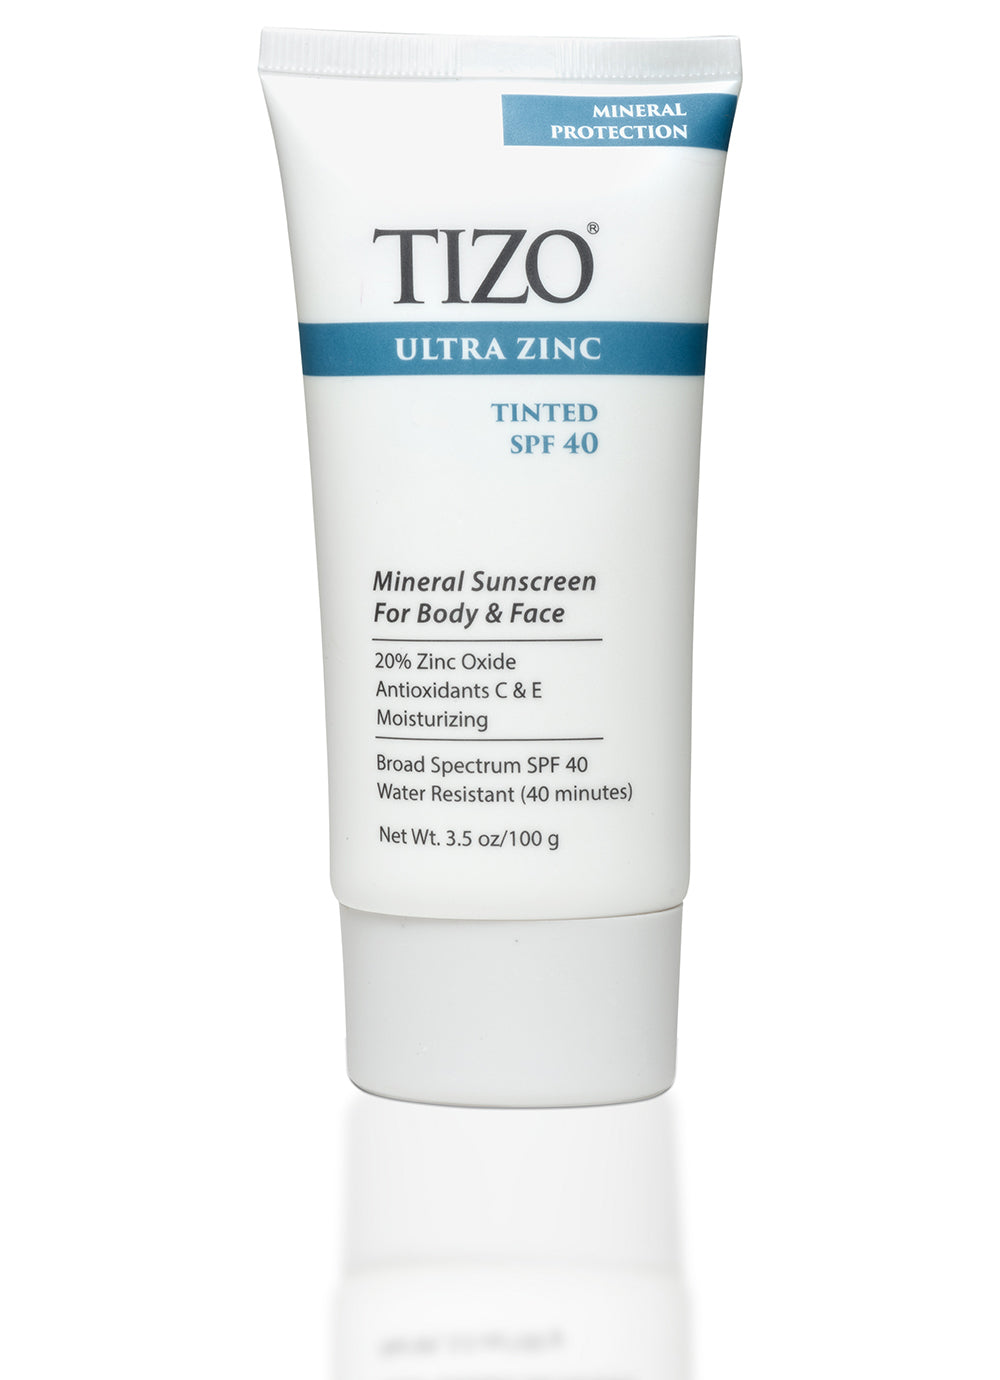 Ultra Zinc Mineral Sunscreen For Body And Face- Tinted + dewy finish SPF 40